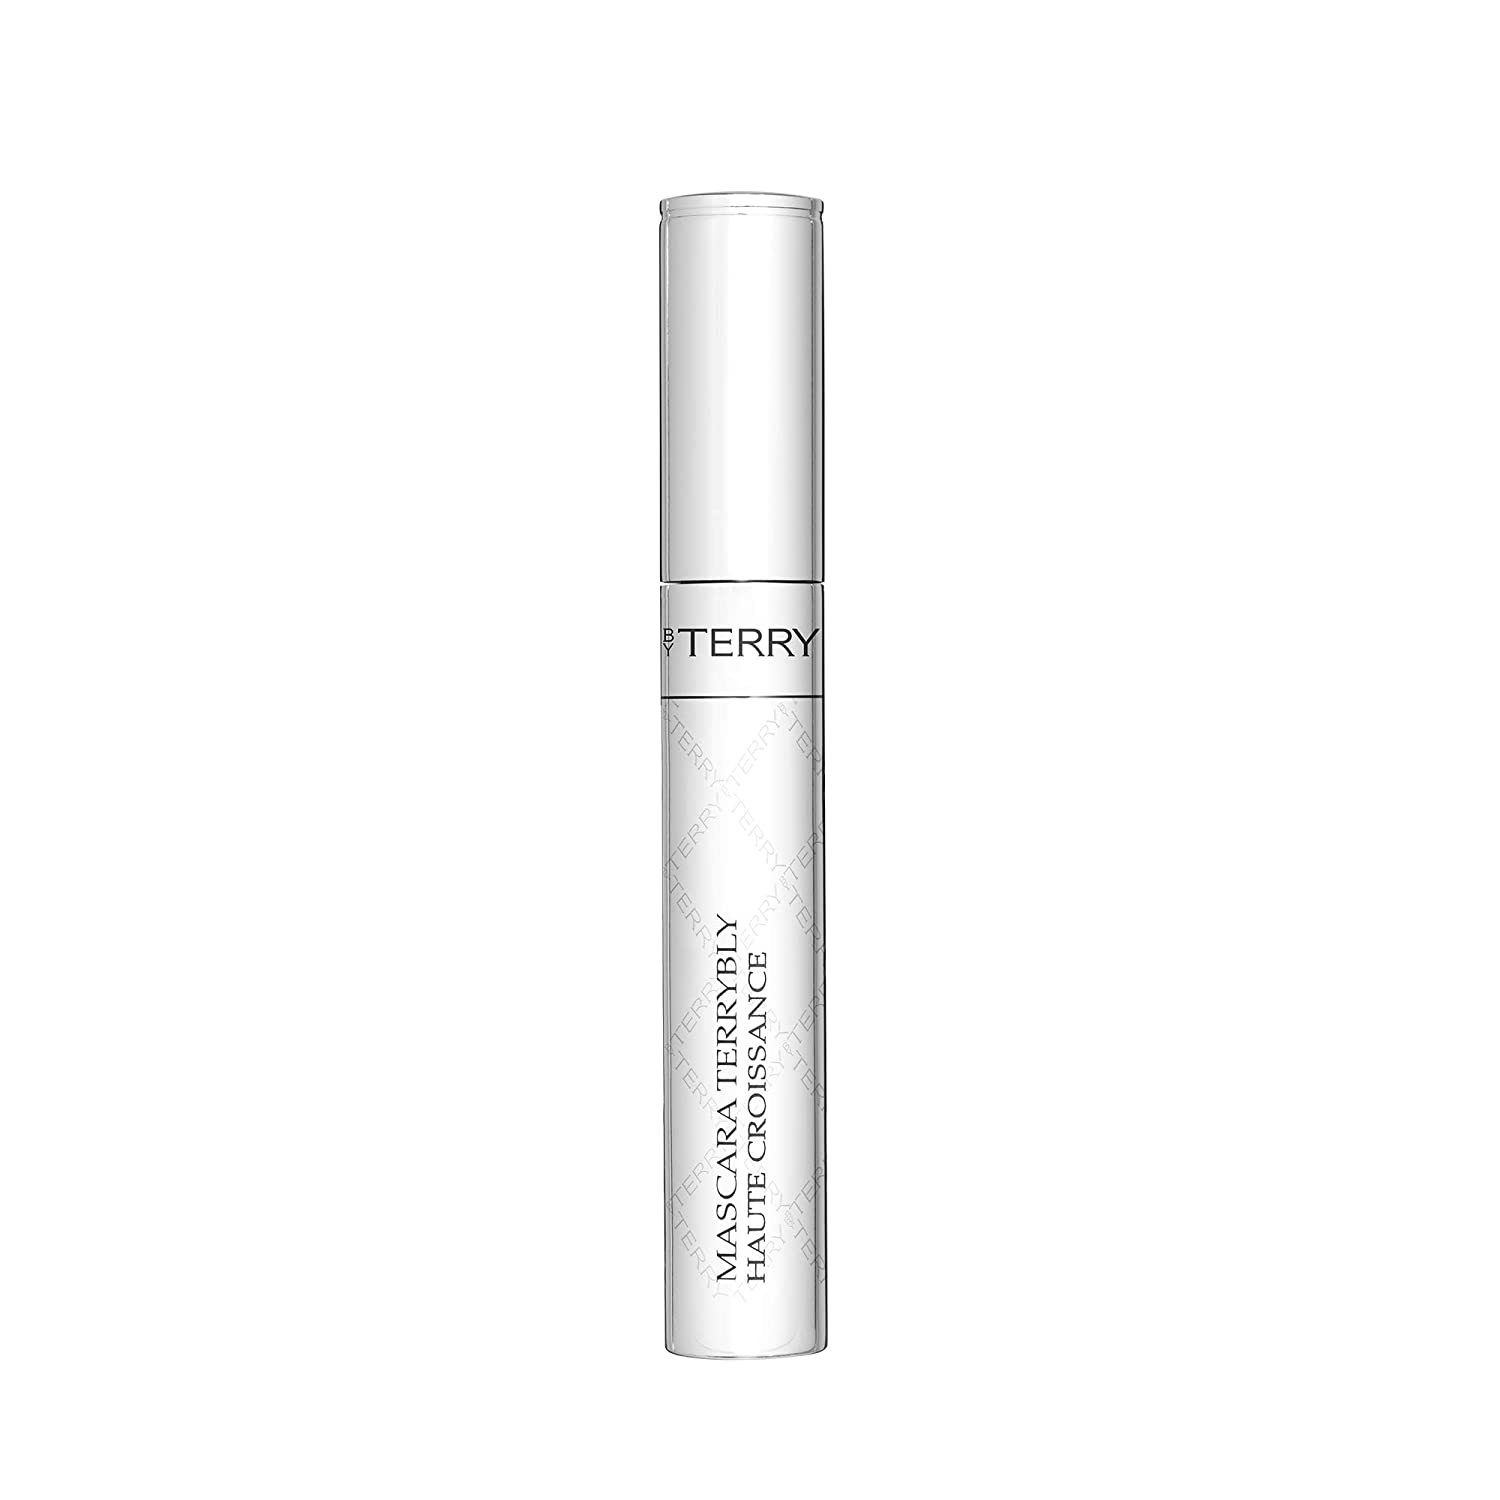 By Terry Terrybly Growth Booster Mascara